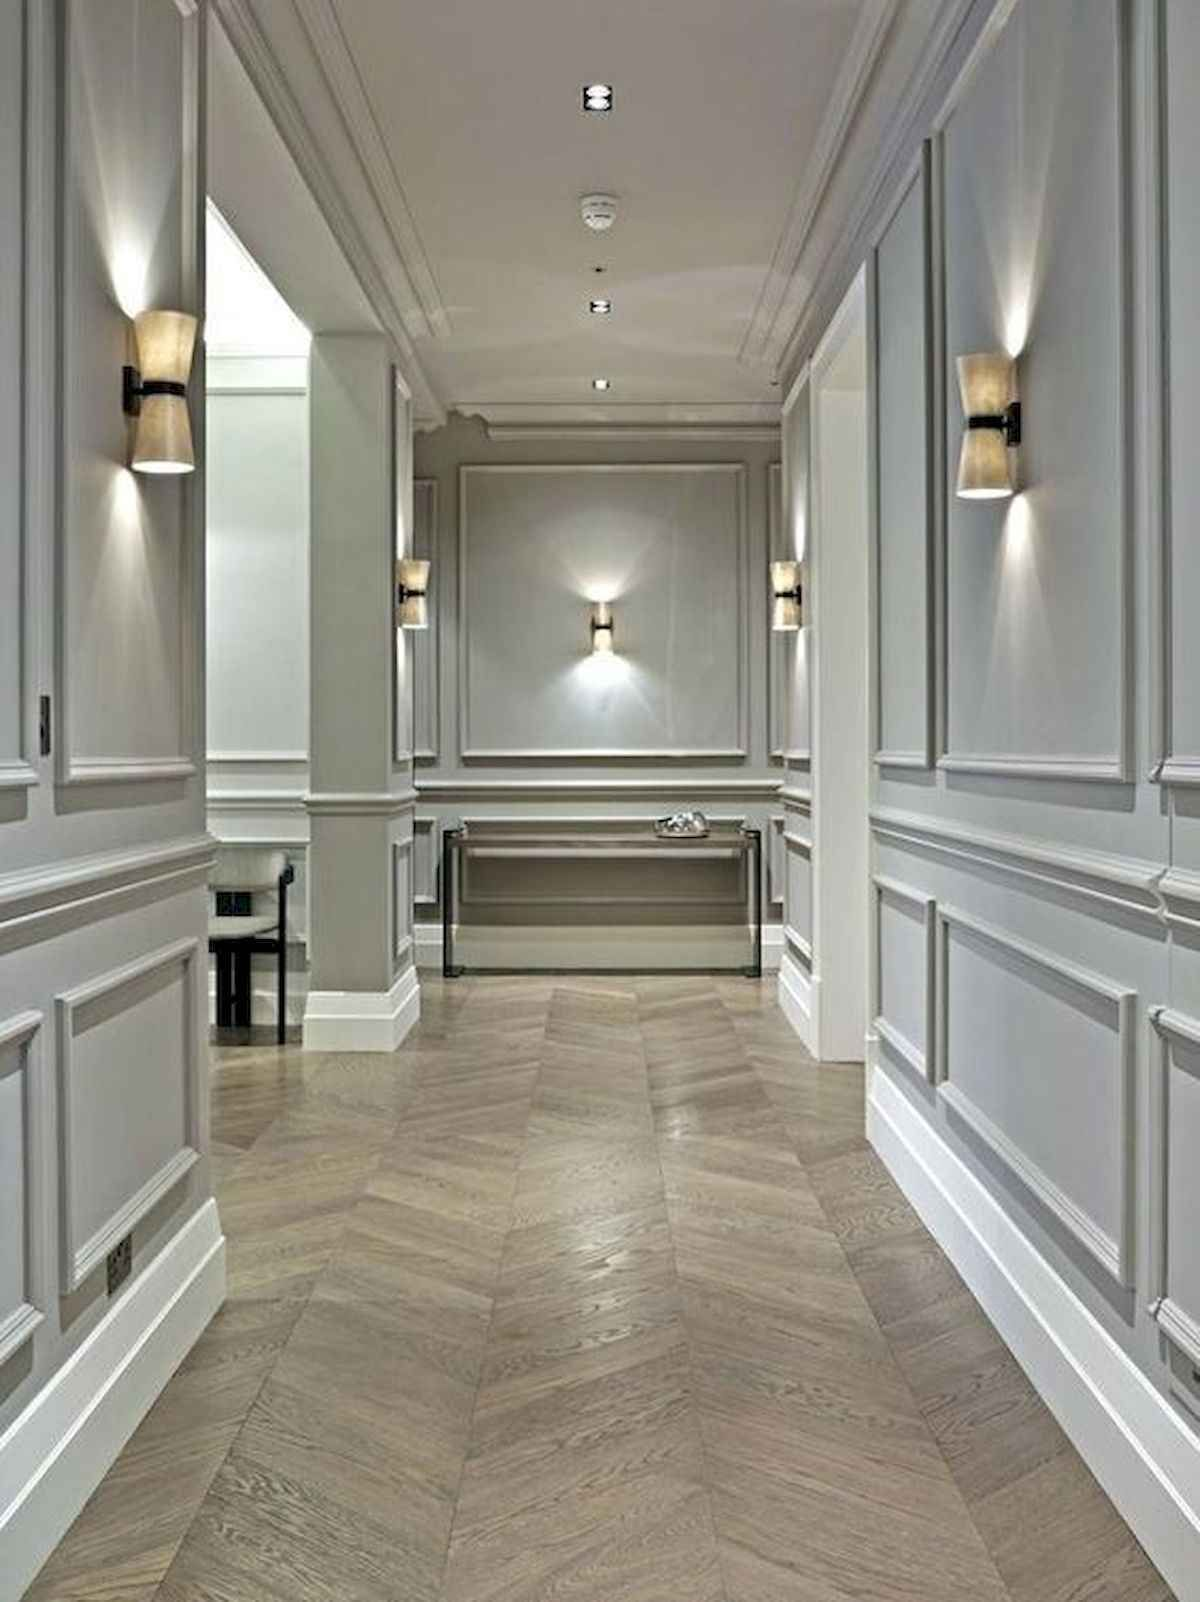 70 Farmhouse Wall Paneling Design Ideas For Living Room Bathroom Kitchen And Bedroom 15 Wainscoting Styles Dining Room Wainscoting House Design